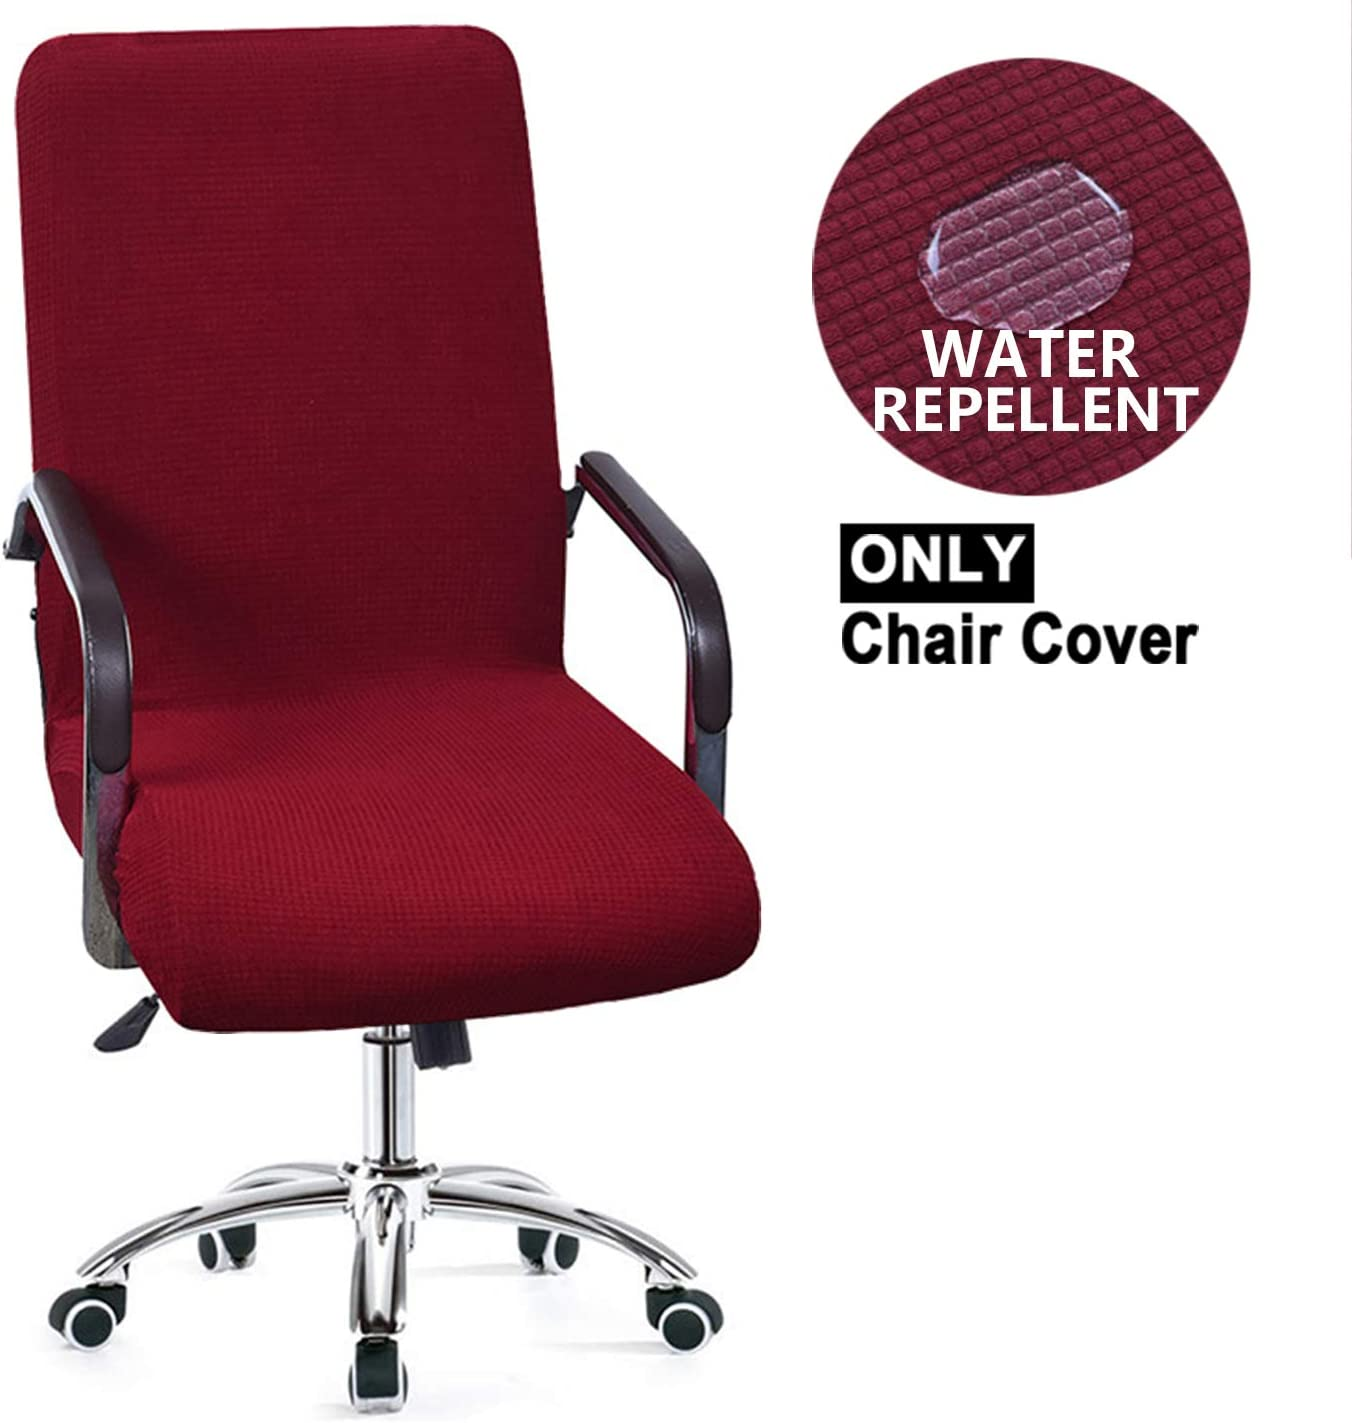 NC HOME High Stretch Office Chair Slipcover, High-Back Executive Swivel Office Computer Desk Chair Cover Modern Simplism Style Desk Chair Cover (Medium, Burgundy Red)